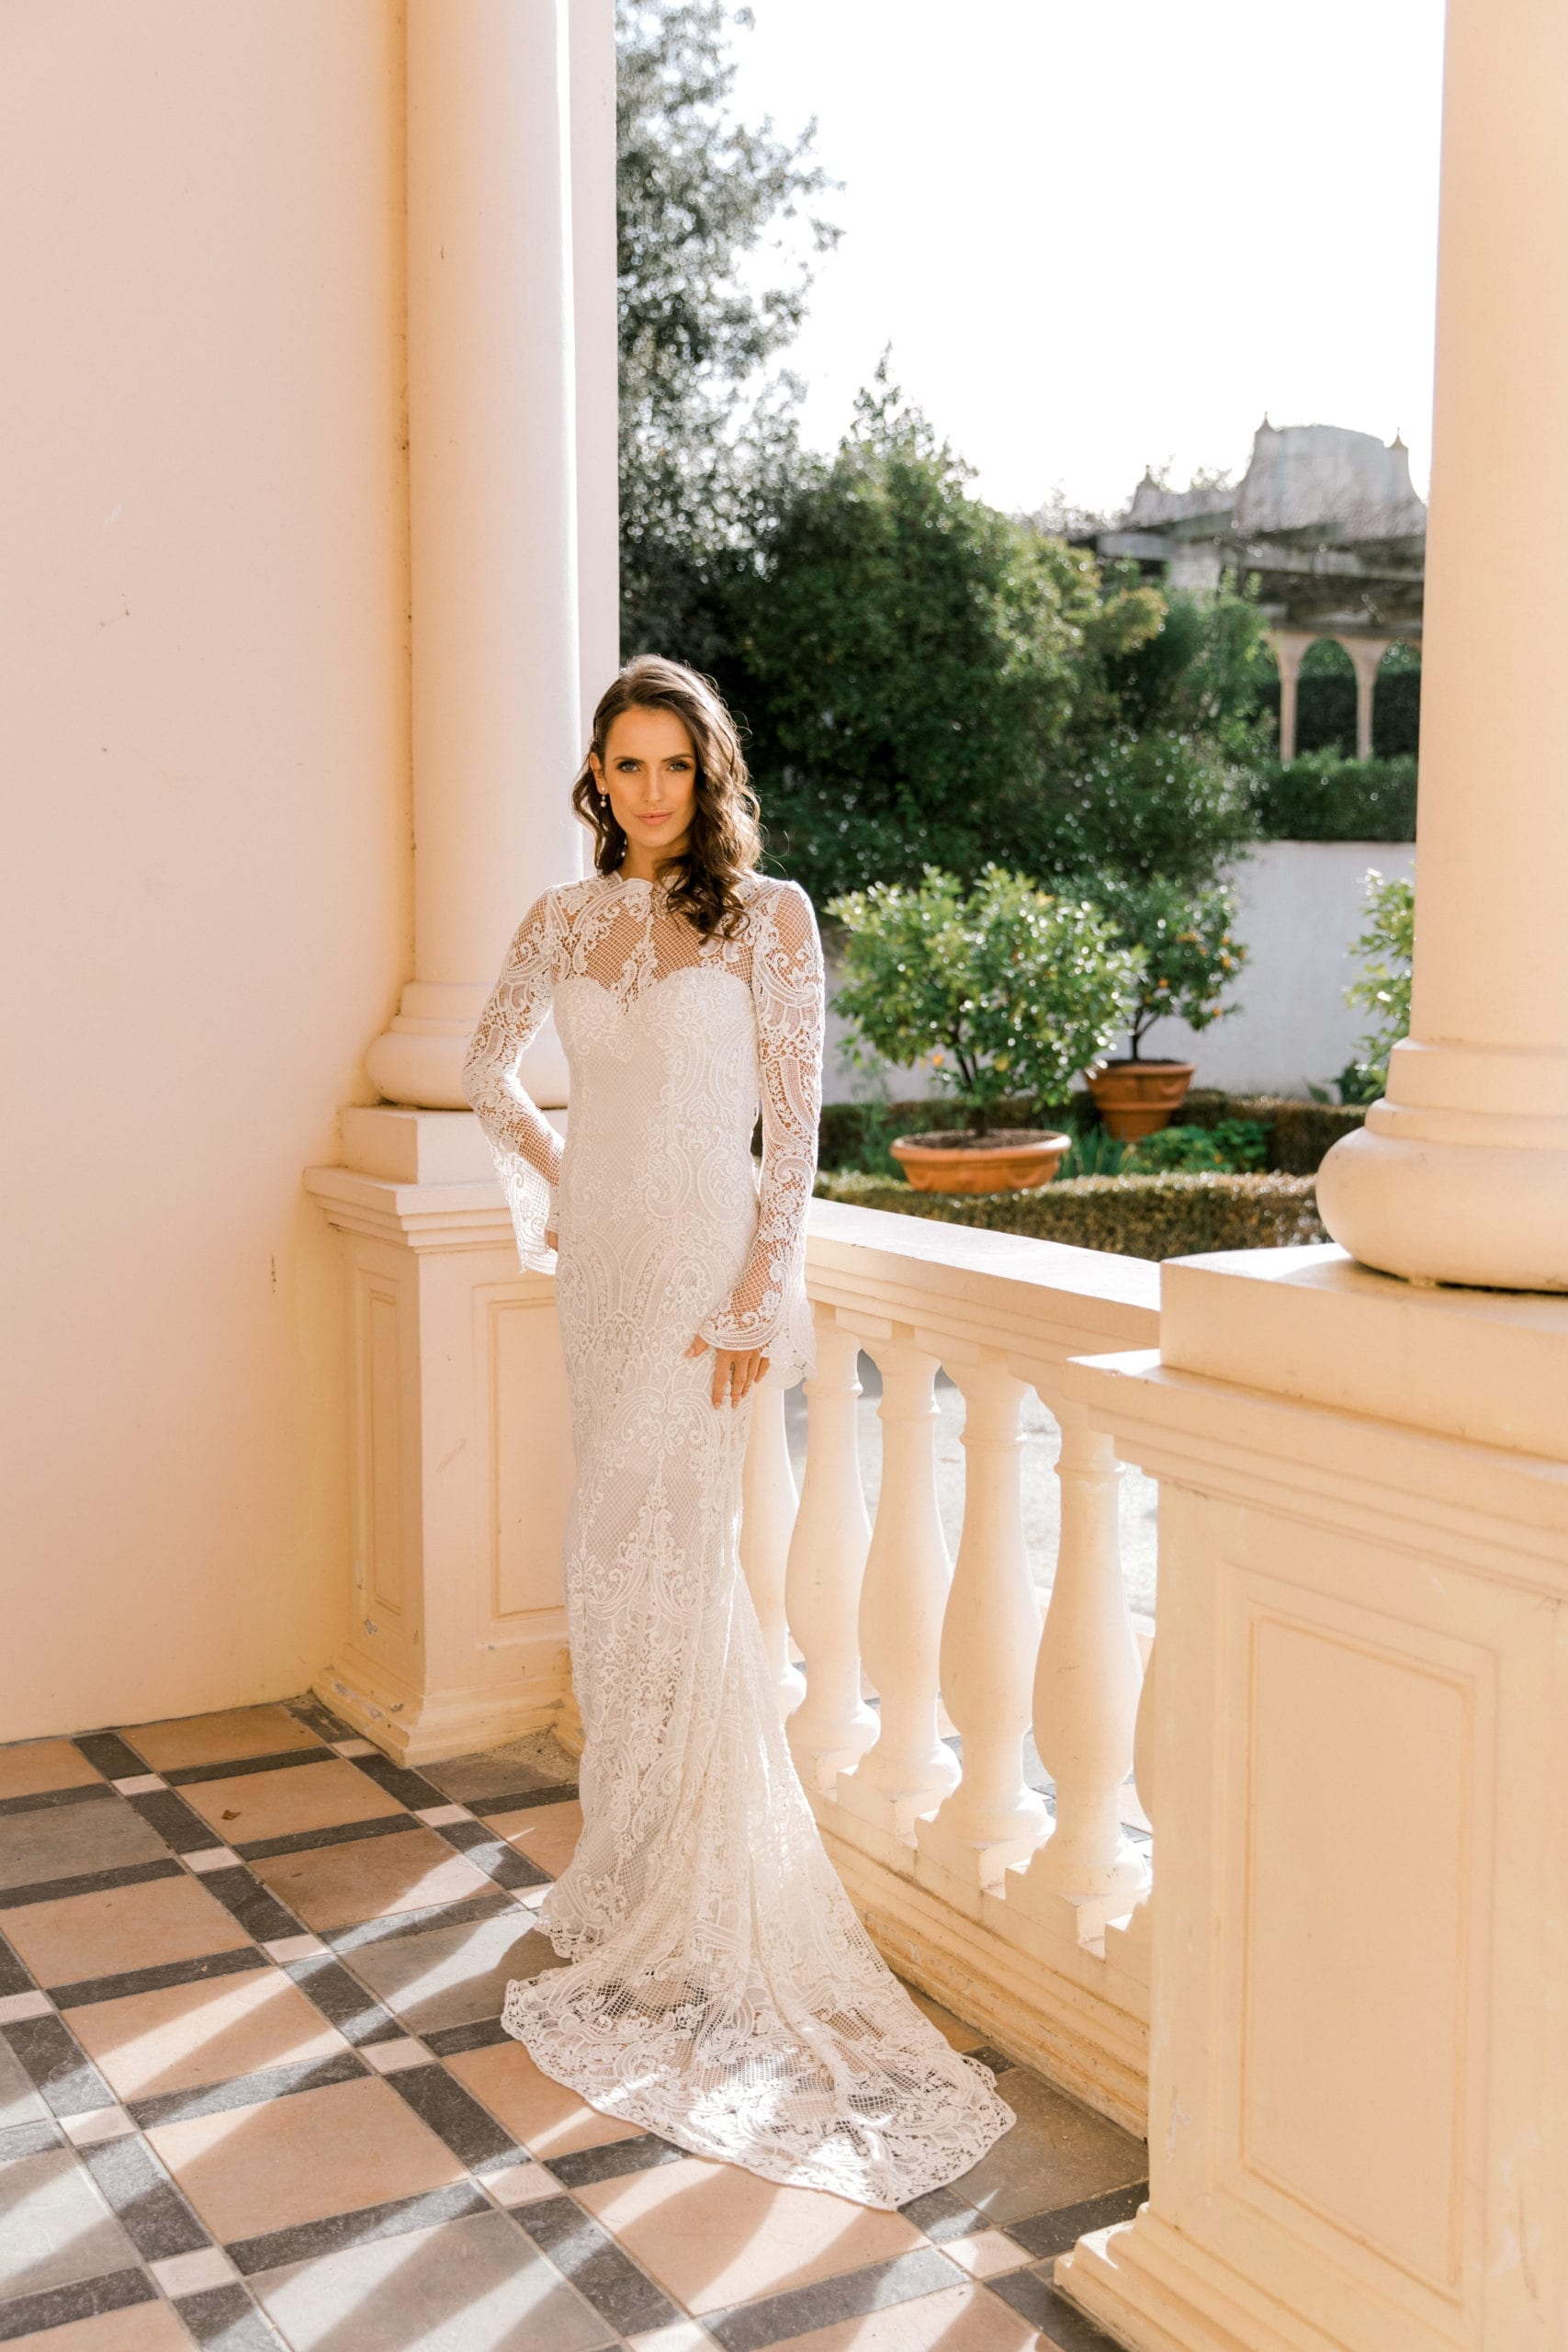 Model wearing Vinka Design Sabine Wedding Dress, a French Crochet Lace Wedding Gown on balcony with garden behind